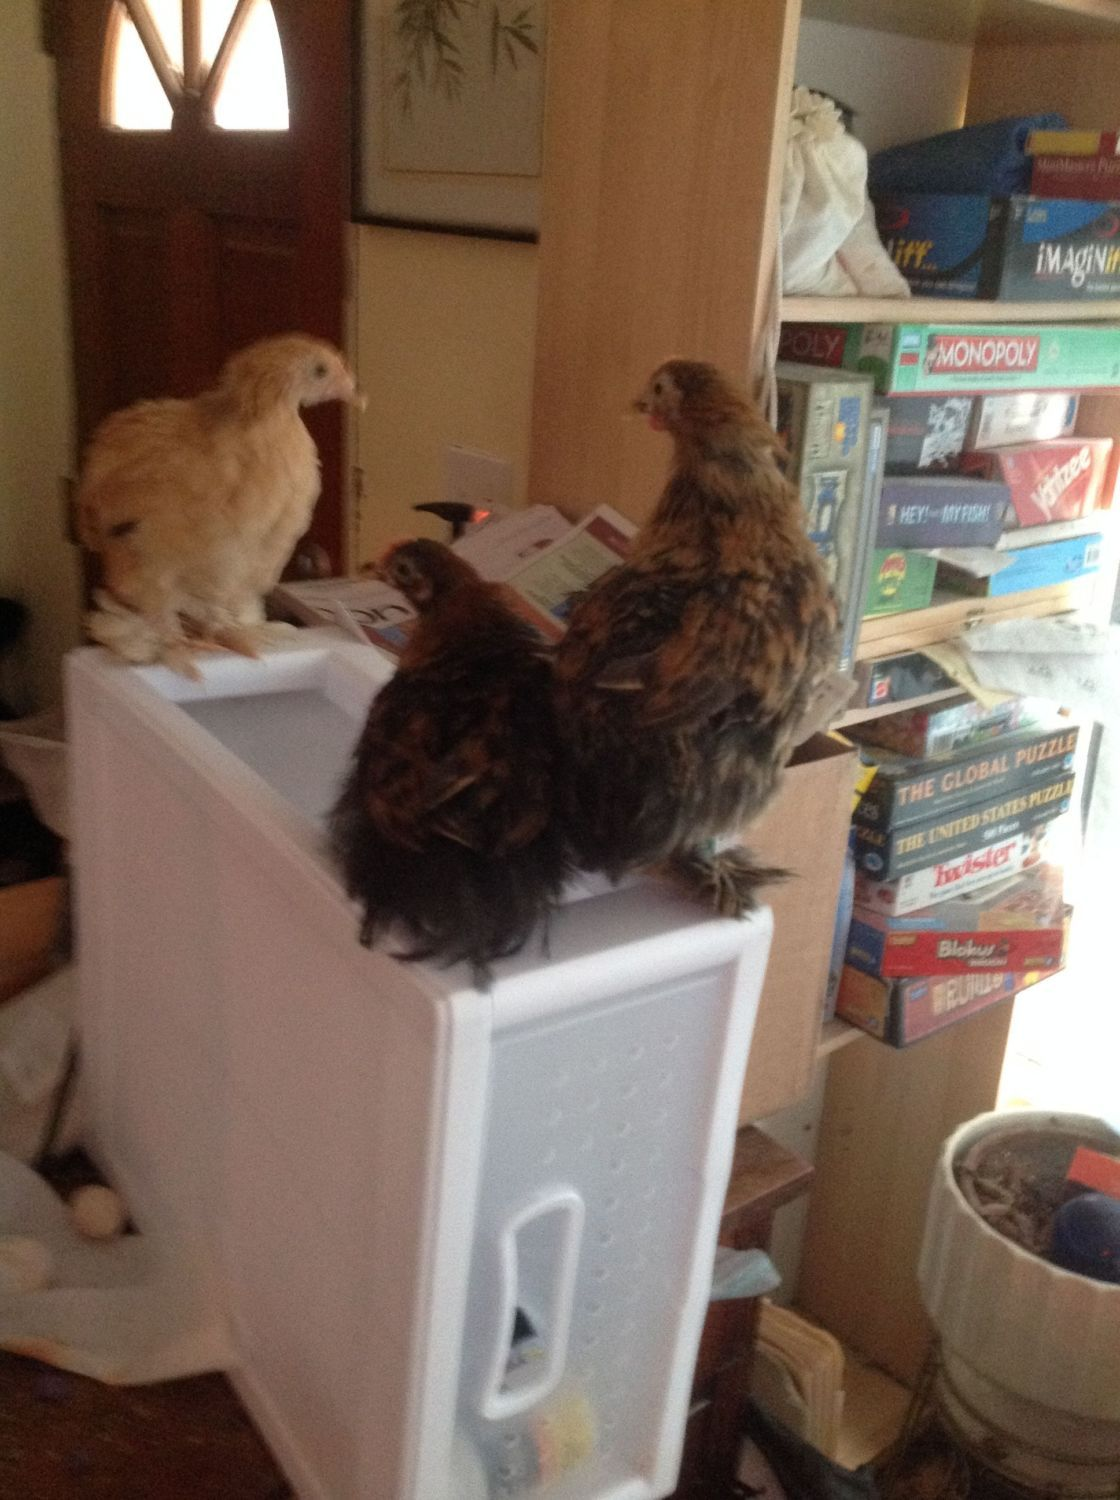 Buffy, Ego, and Sassy, the three baby Cochins, plus Wild Thing, the silkied Serama cockerel.